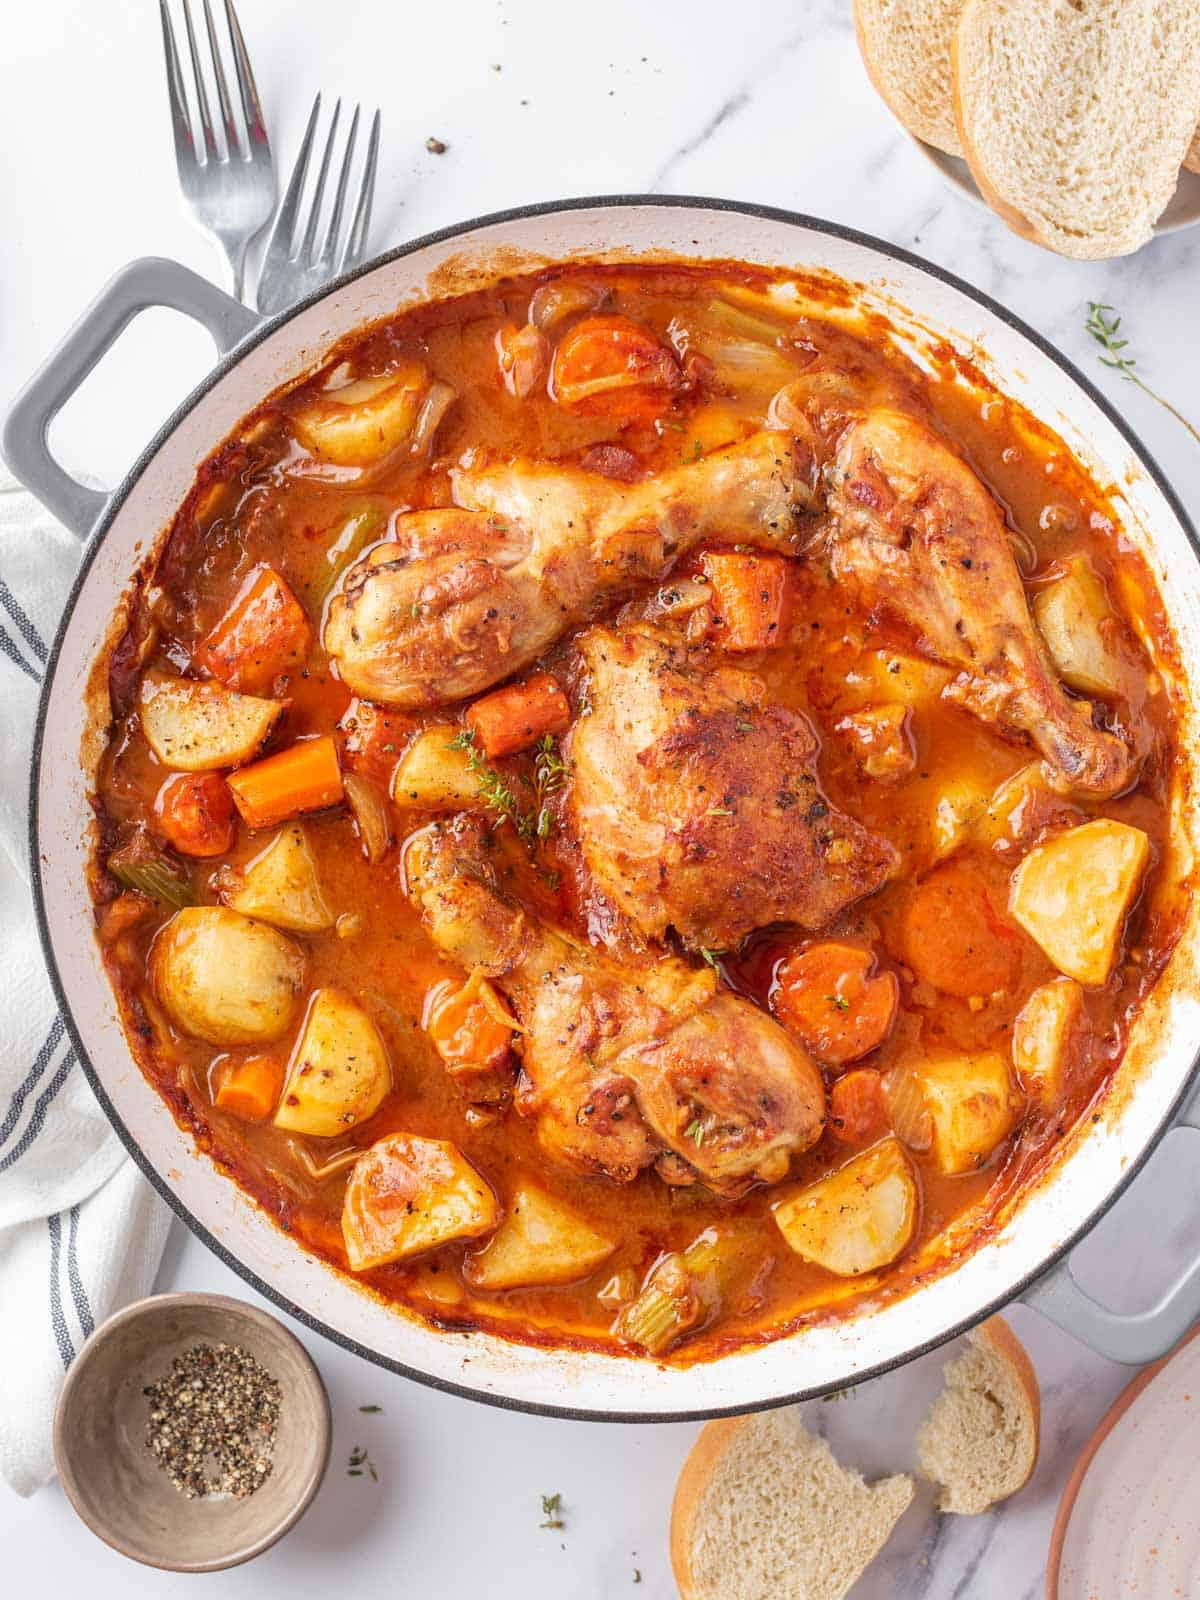 Easy chicken stew recipe with veggies in a skillet